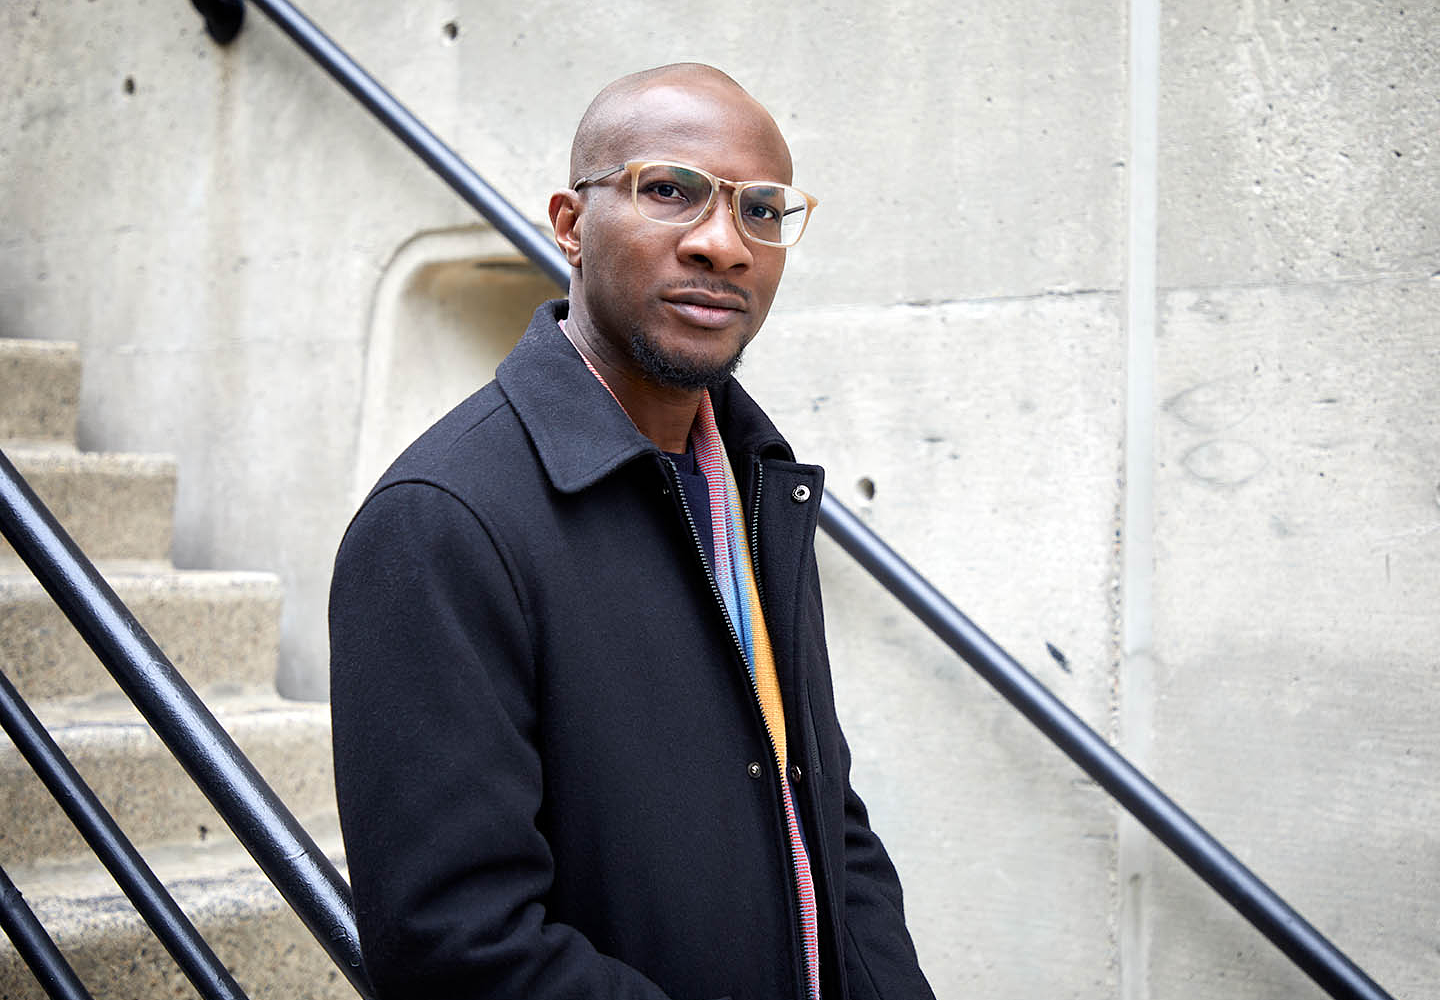 Classical Interludes: Sounds and Stories with Teju Cole